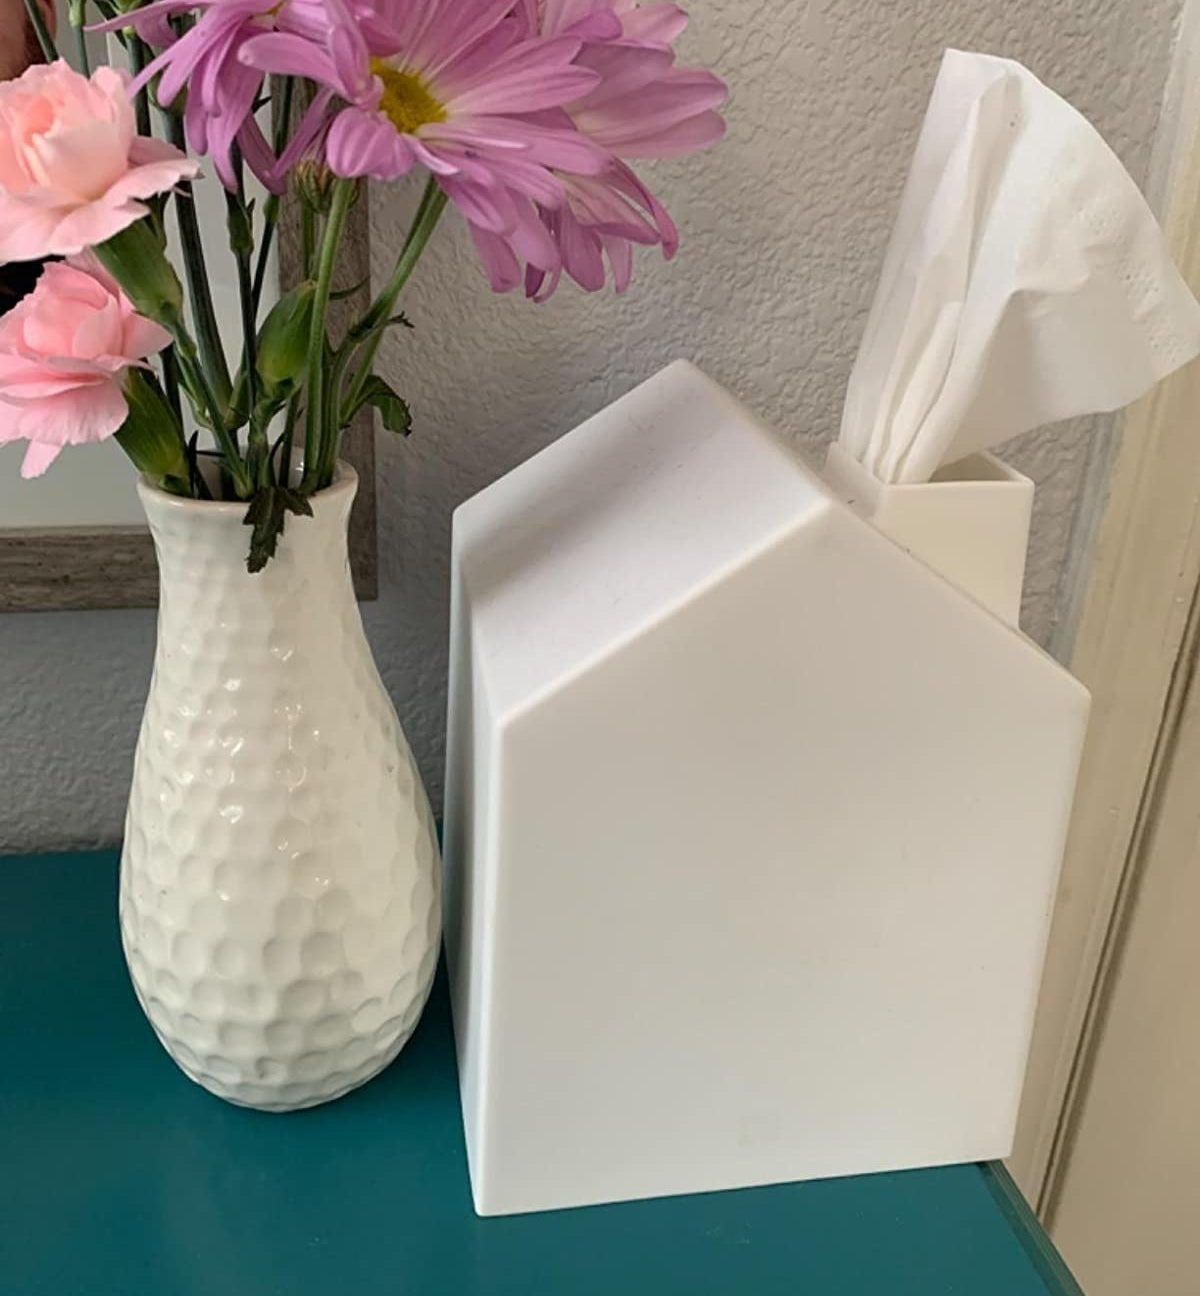 A three-dimensional house-shaped tissue holder sitting next to a vase of flowers